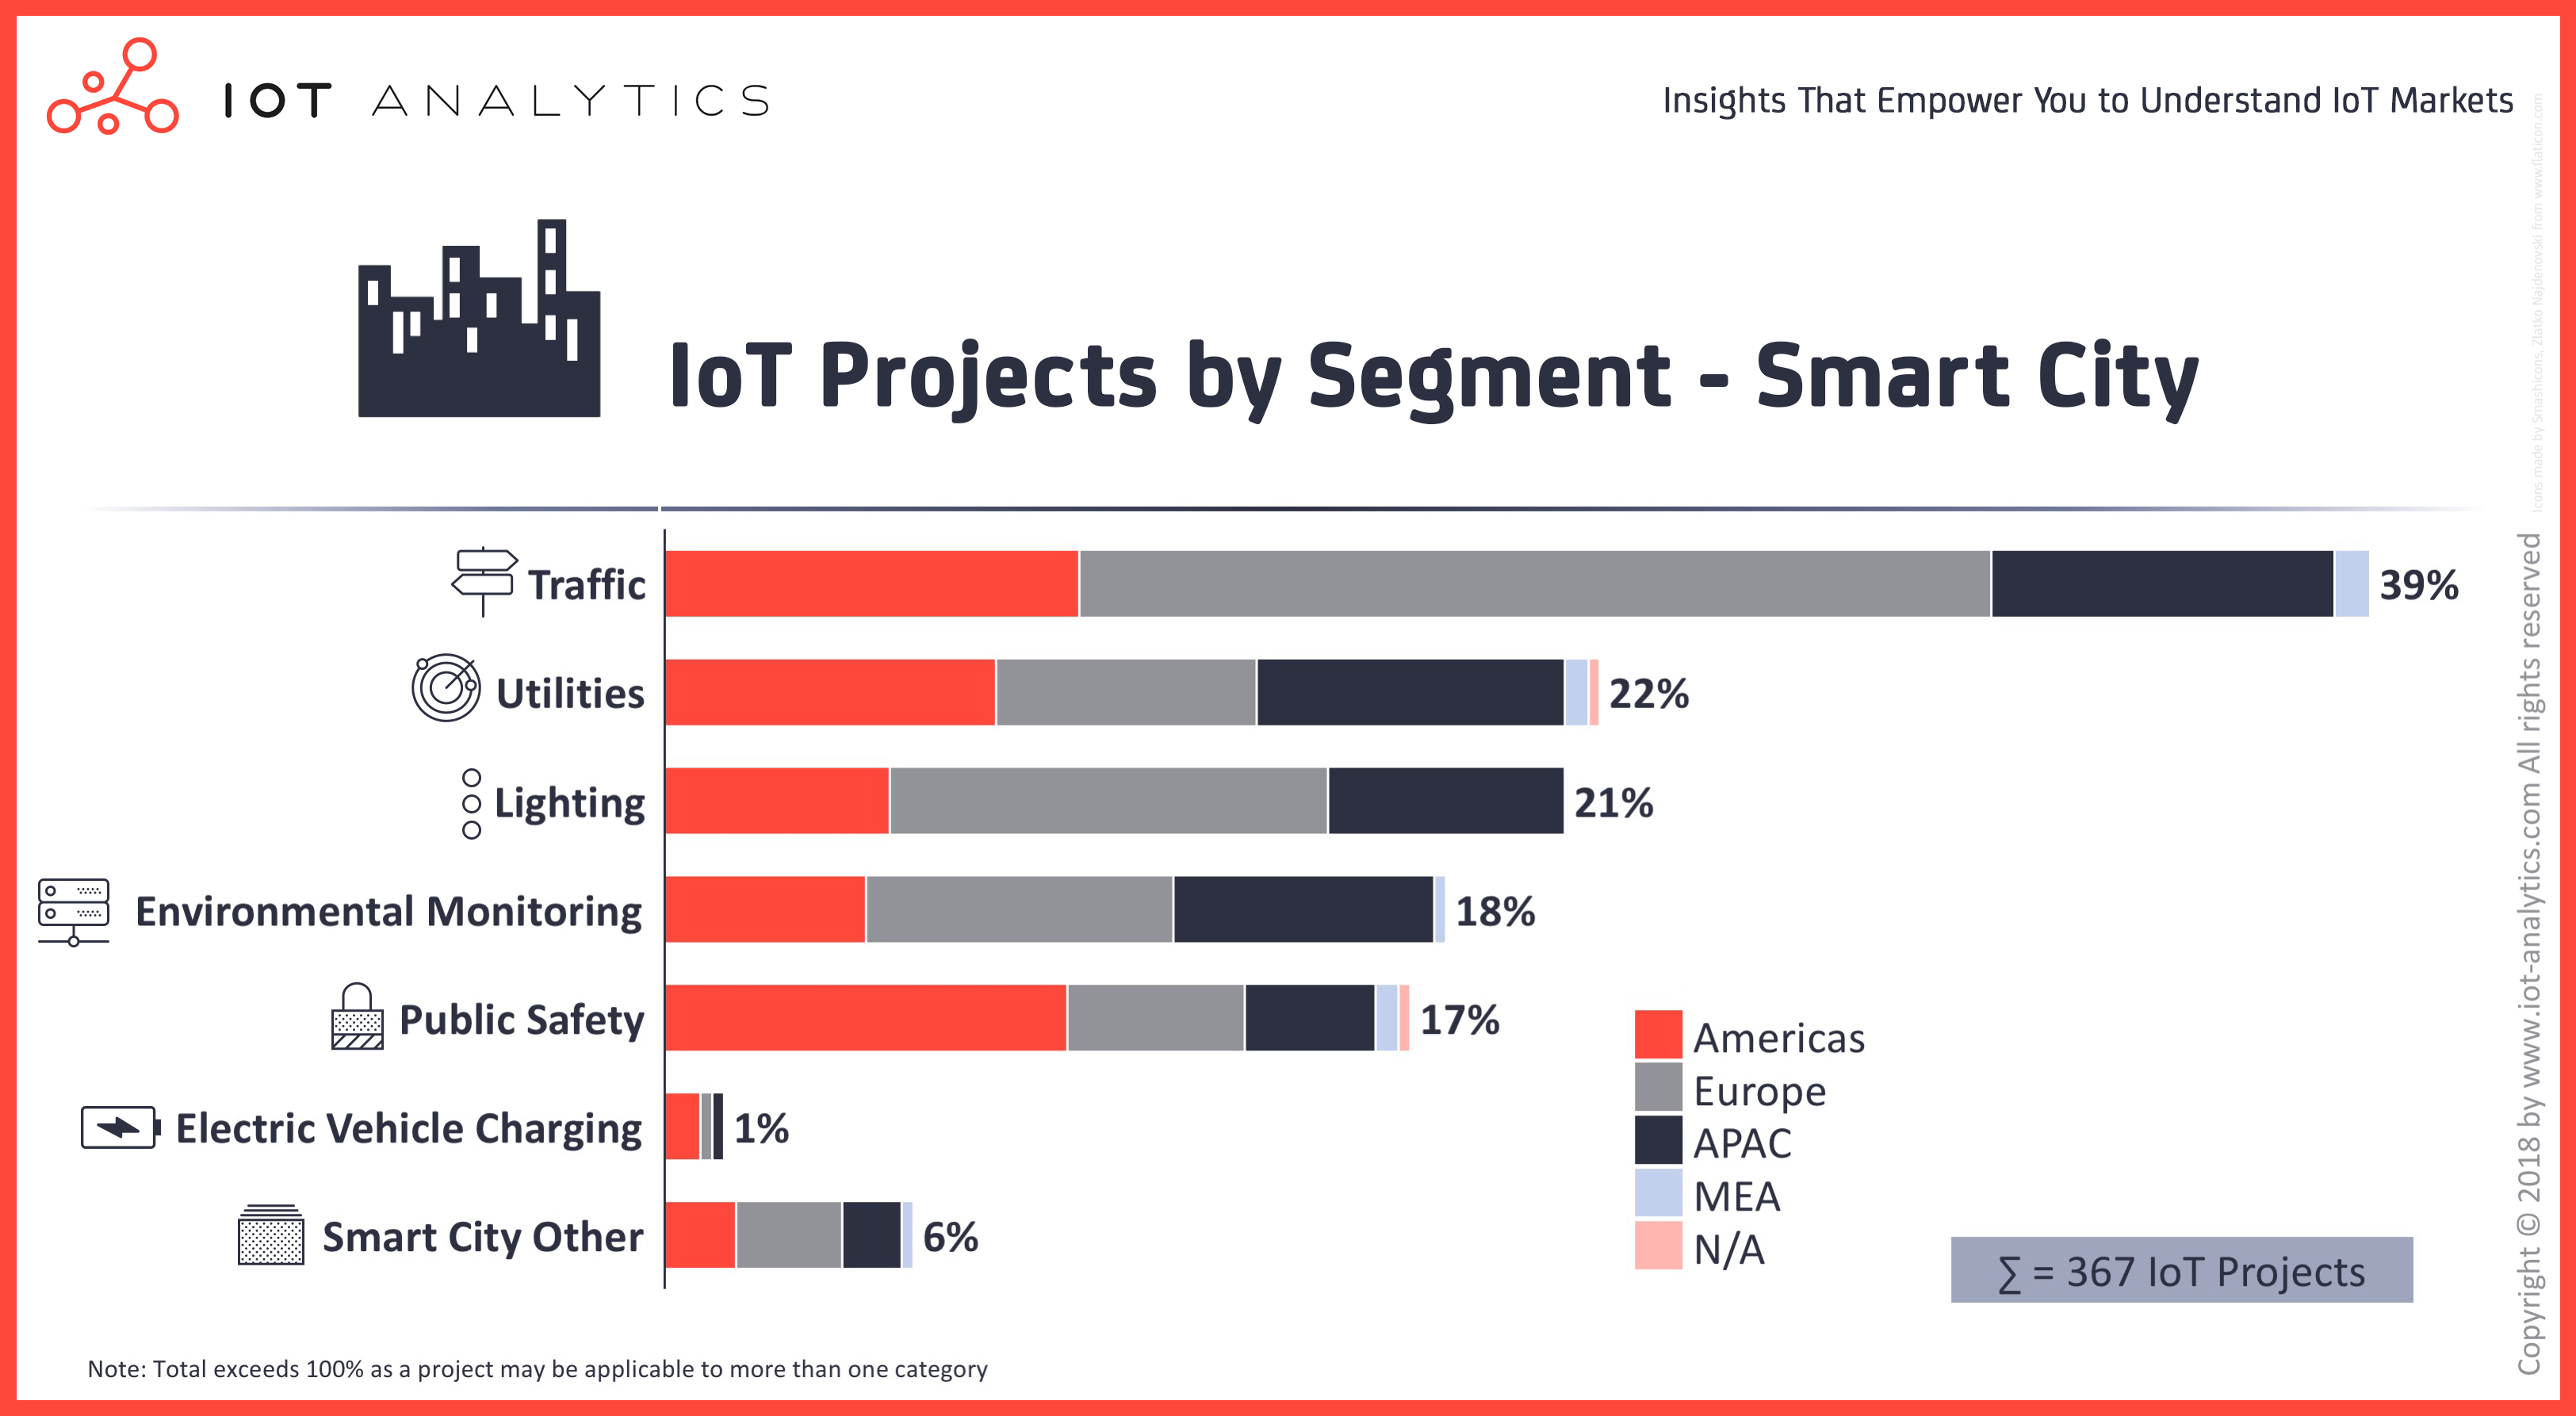 IoTAnalytics-IoT-Projects-Smart-City-Segment-Image